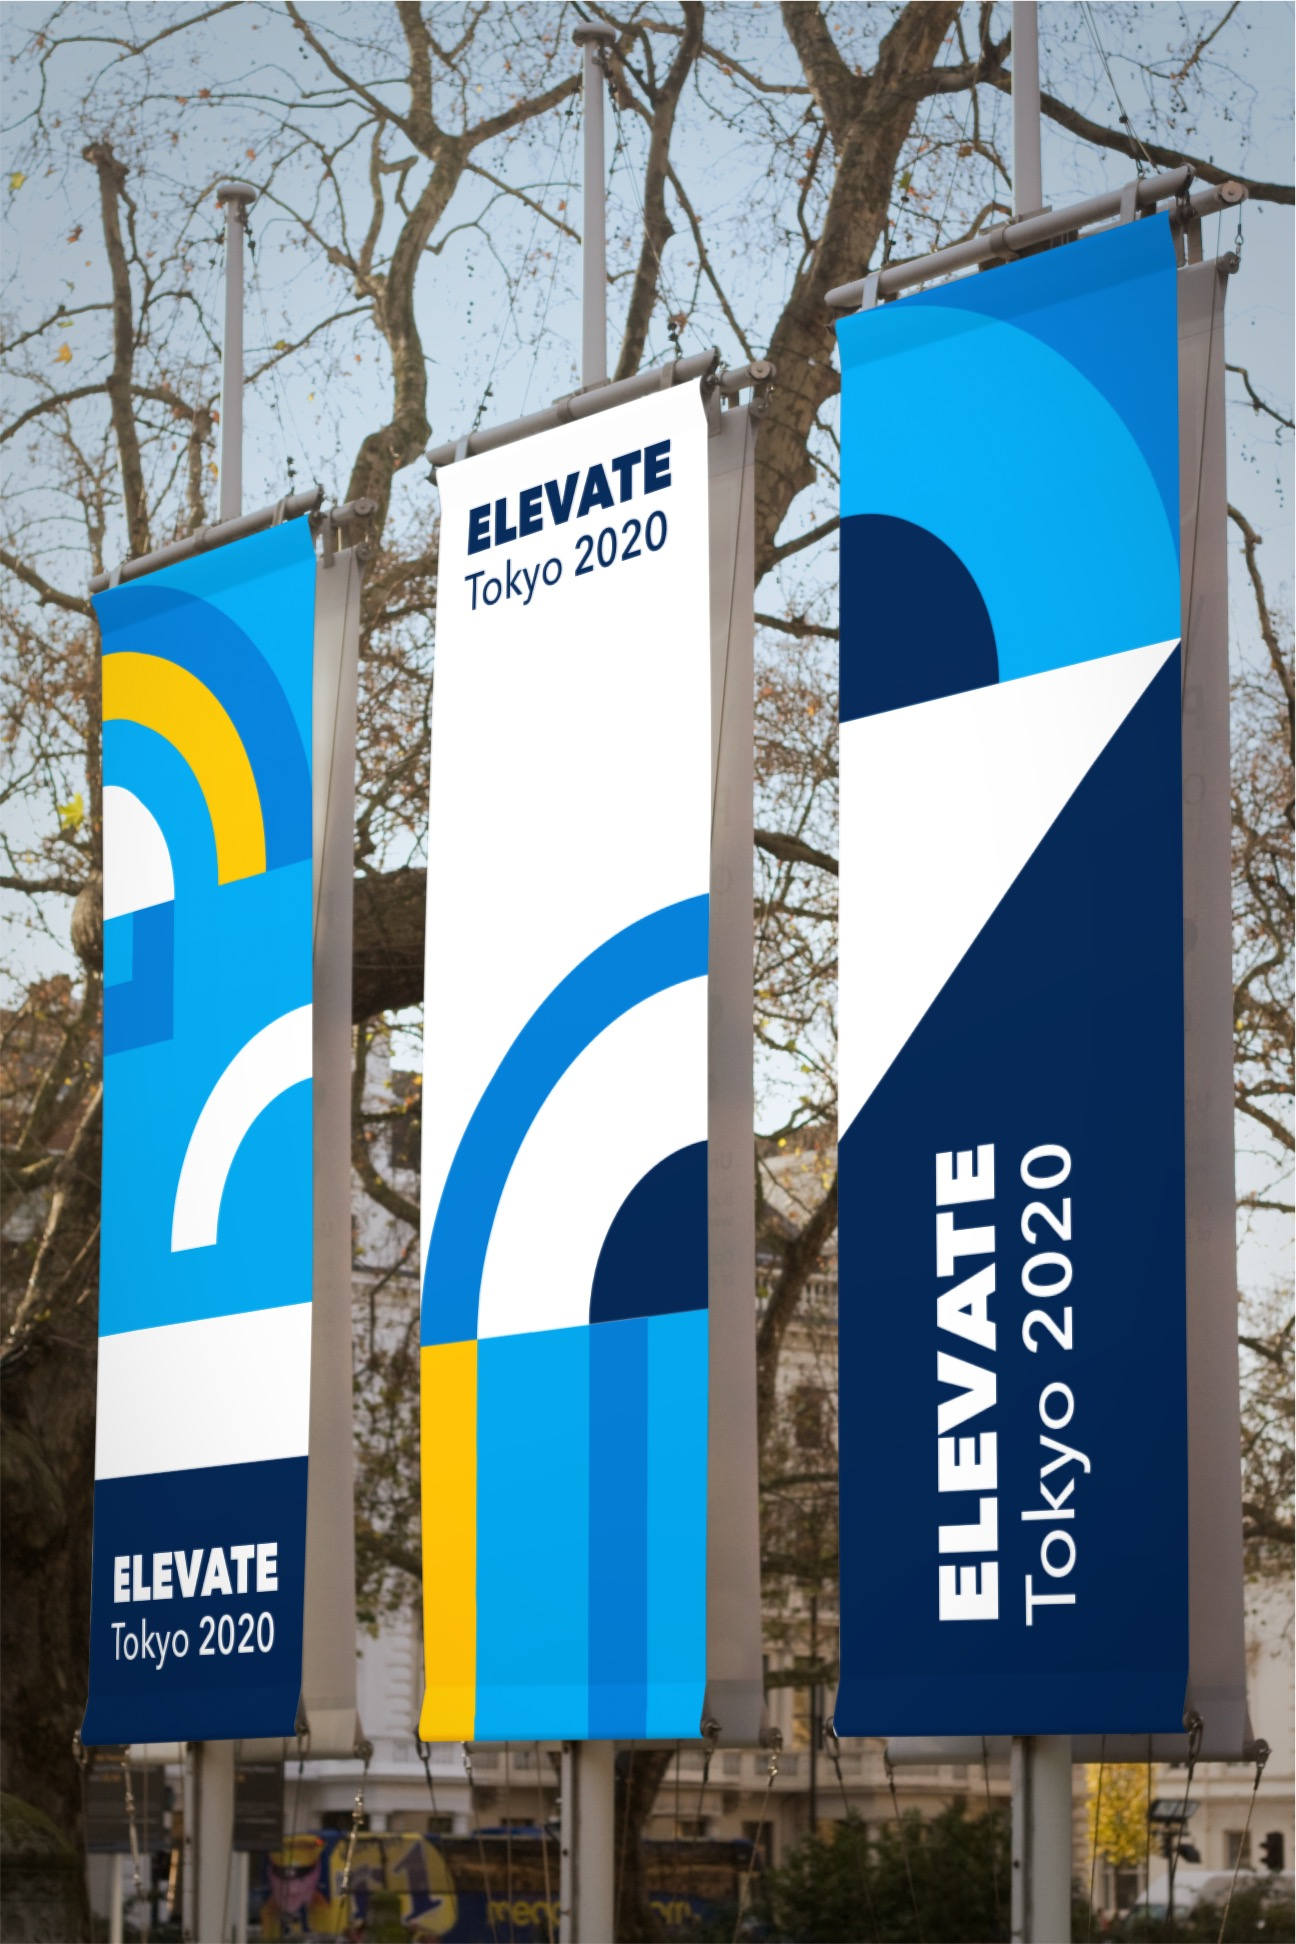 Elevate_Banners_5MAR2020